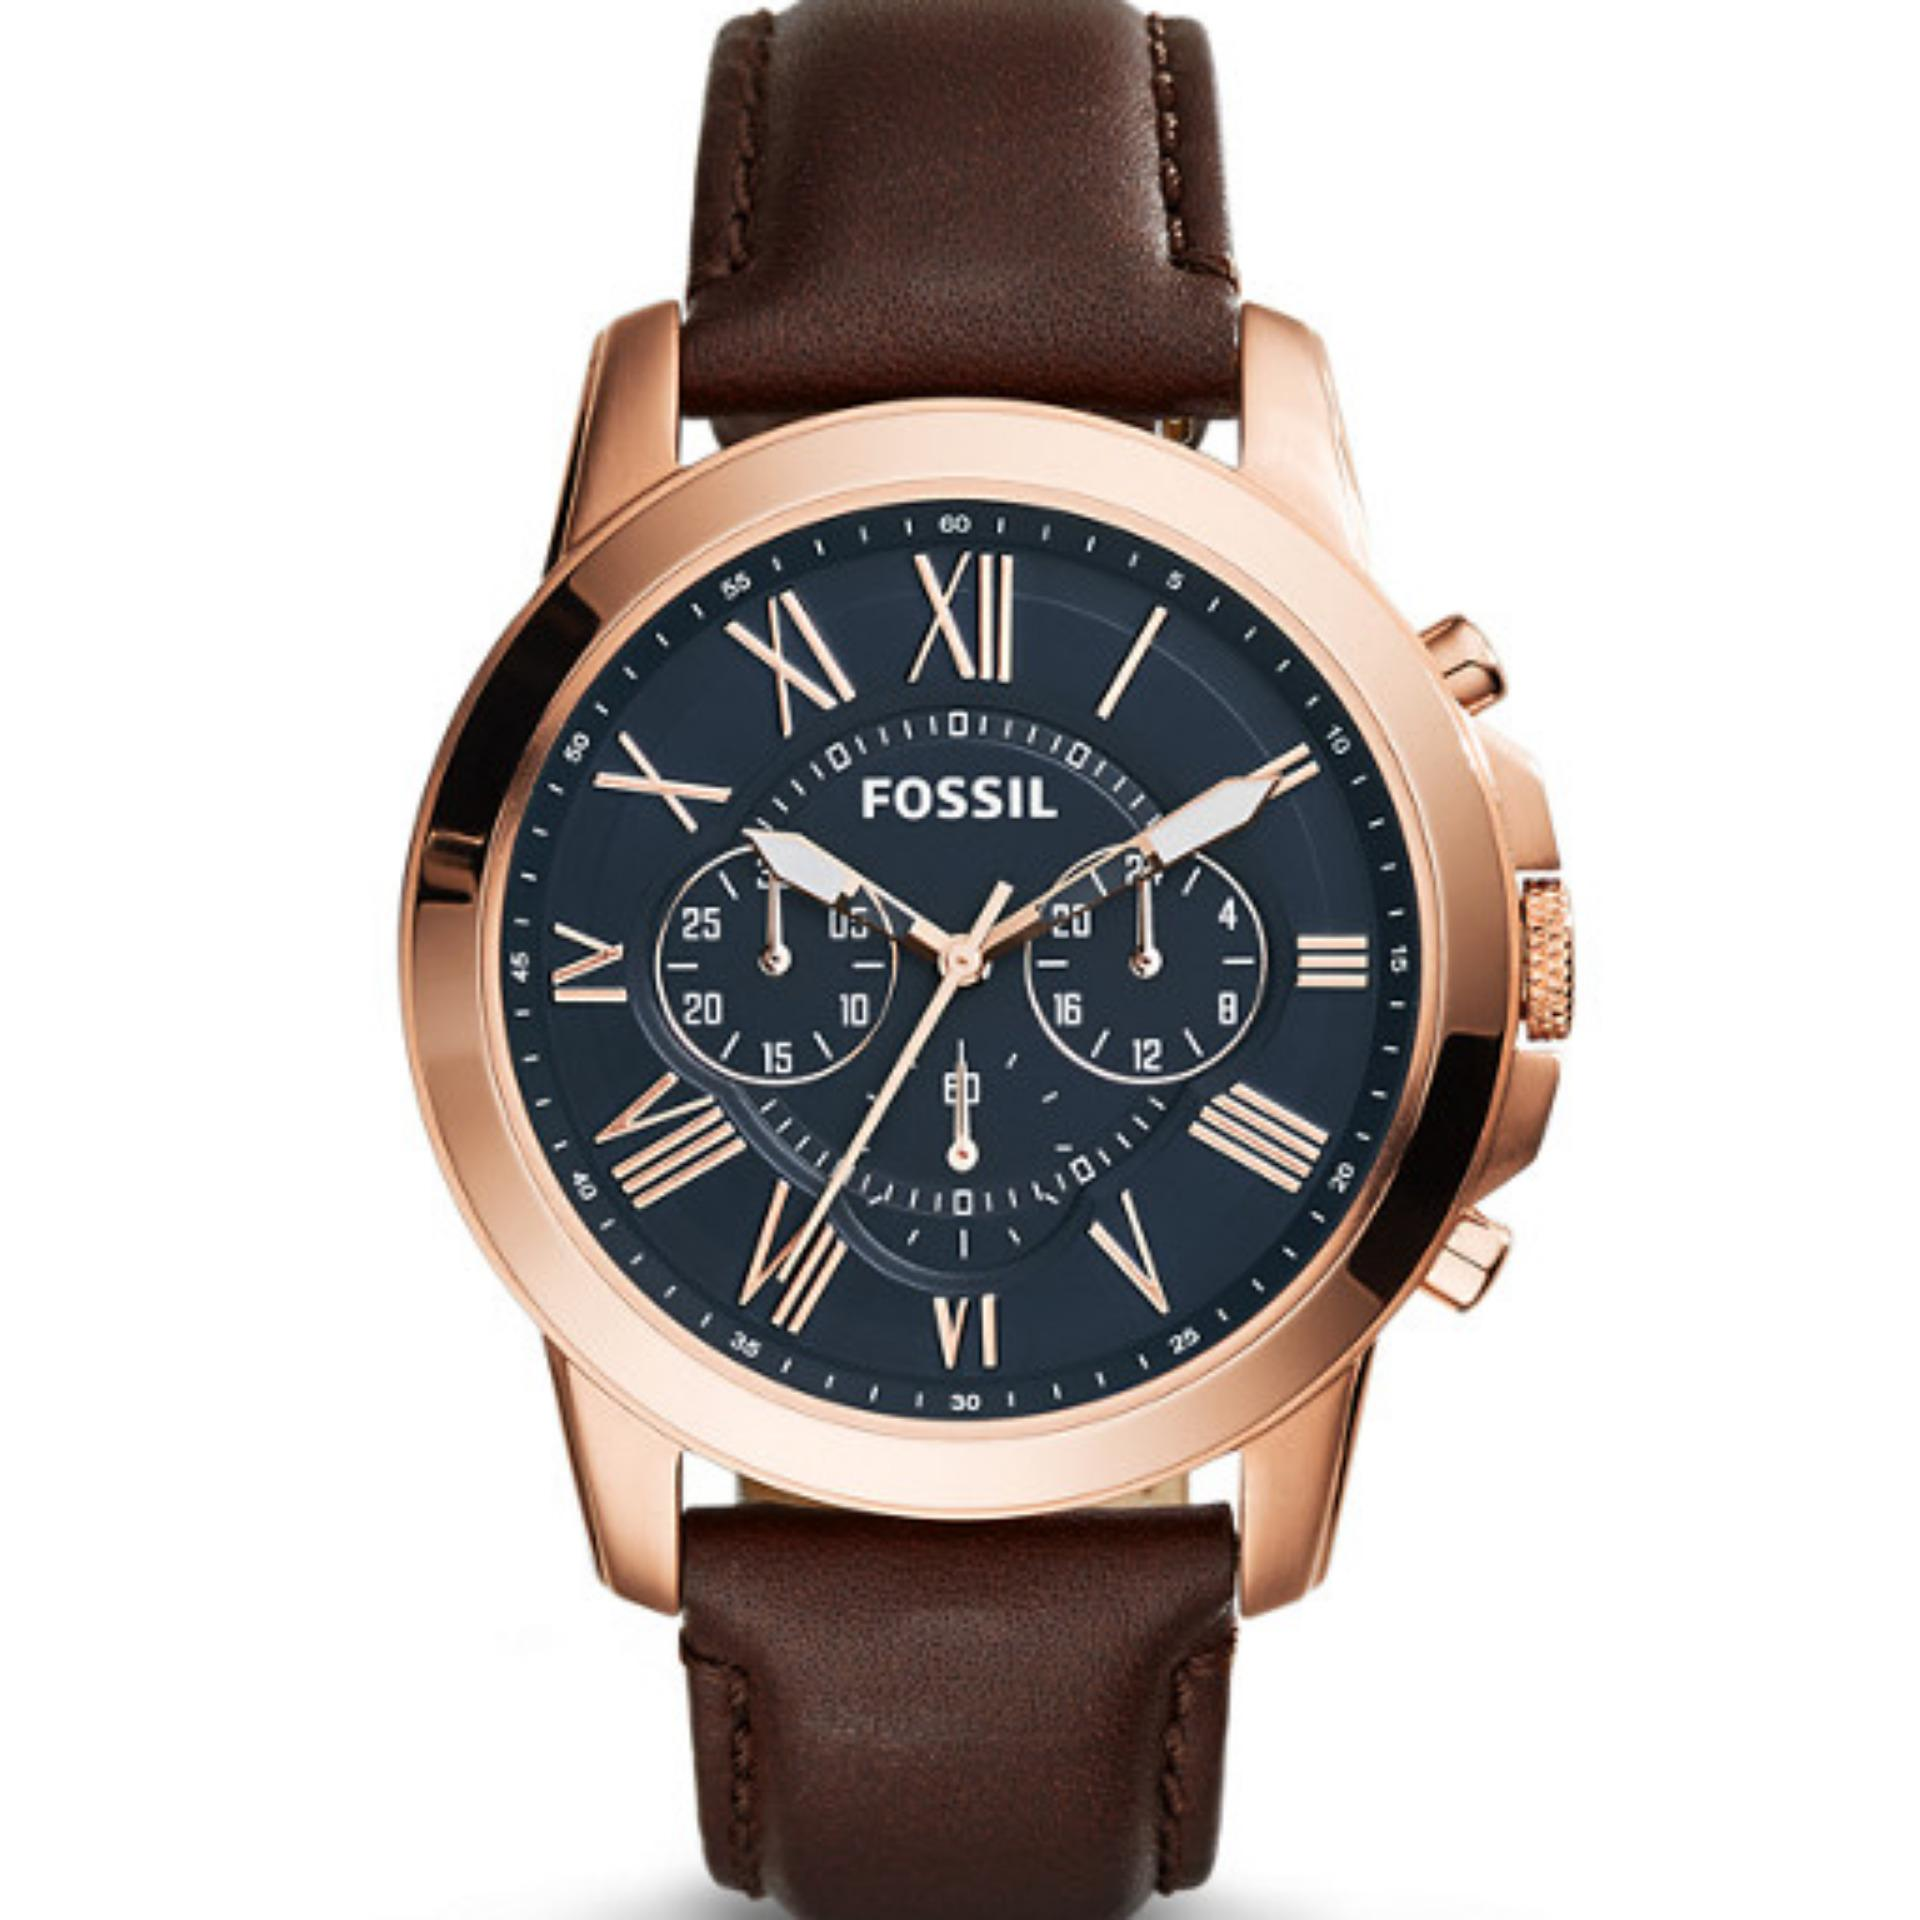 Fossil Me1144 Jam Tangan Pria Leather Brown Update Daftar Harga Es4060 Unisex Silver Fs5068 Grant Chronograph Watch